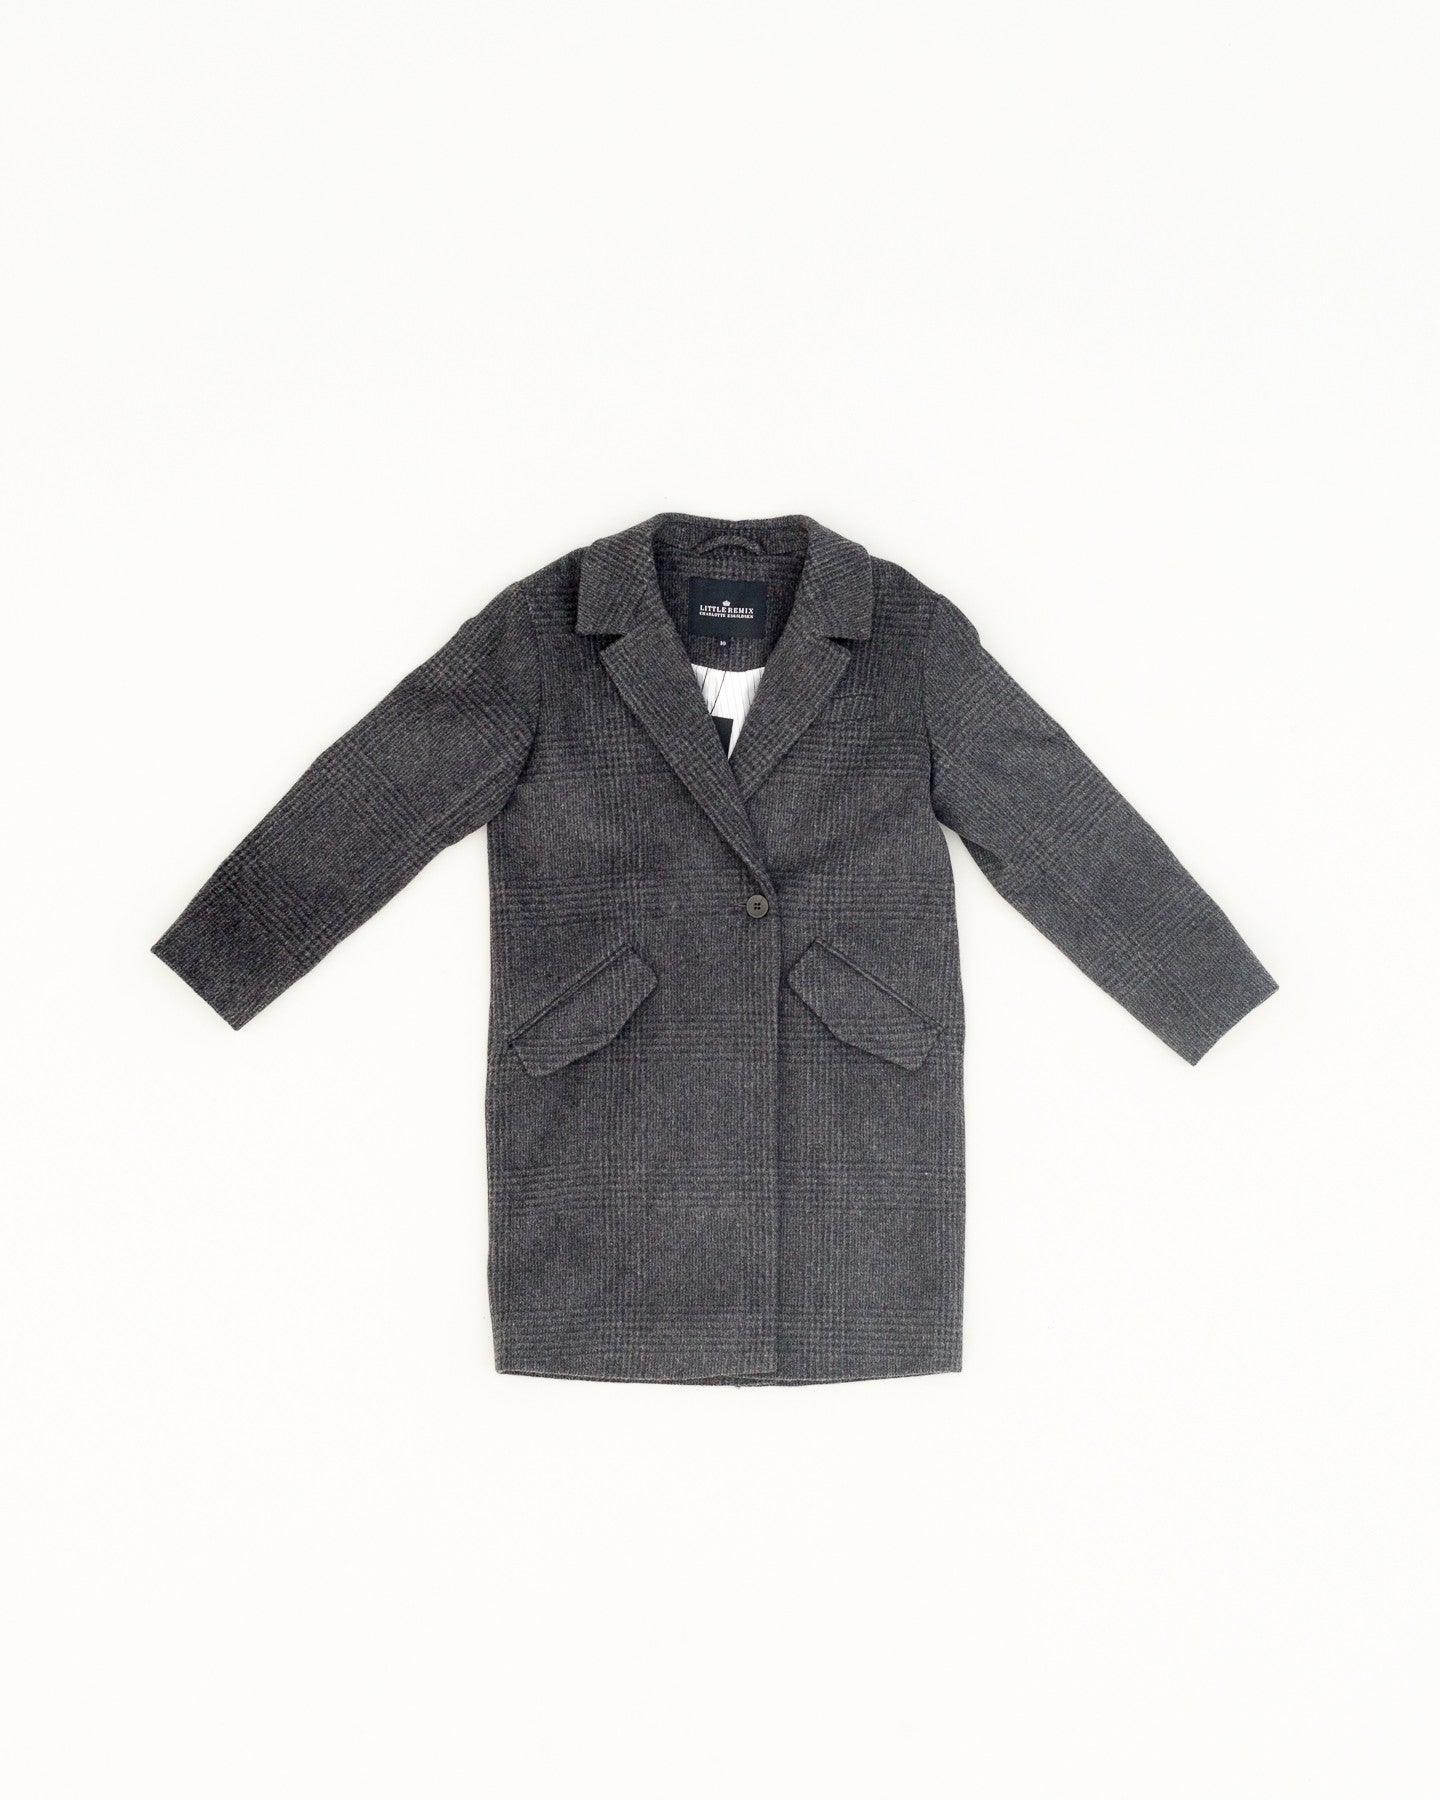 Corey coat - grey black check